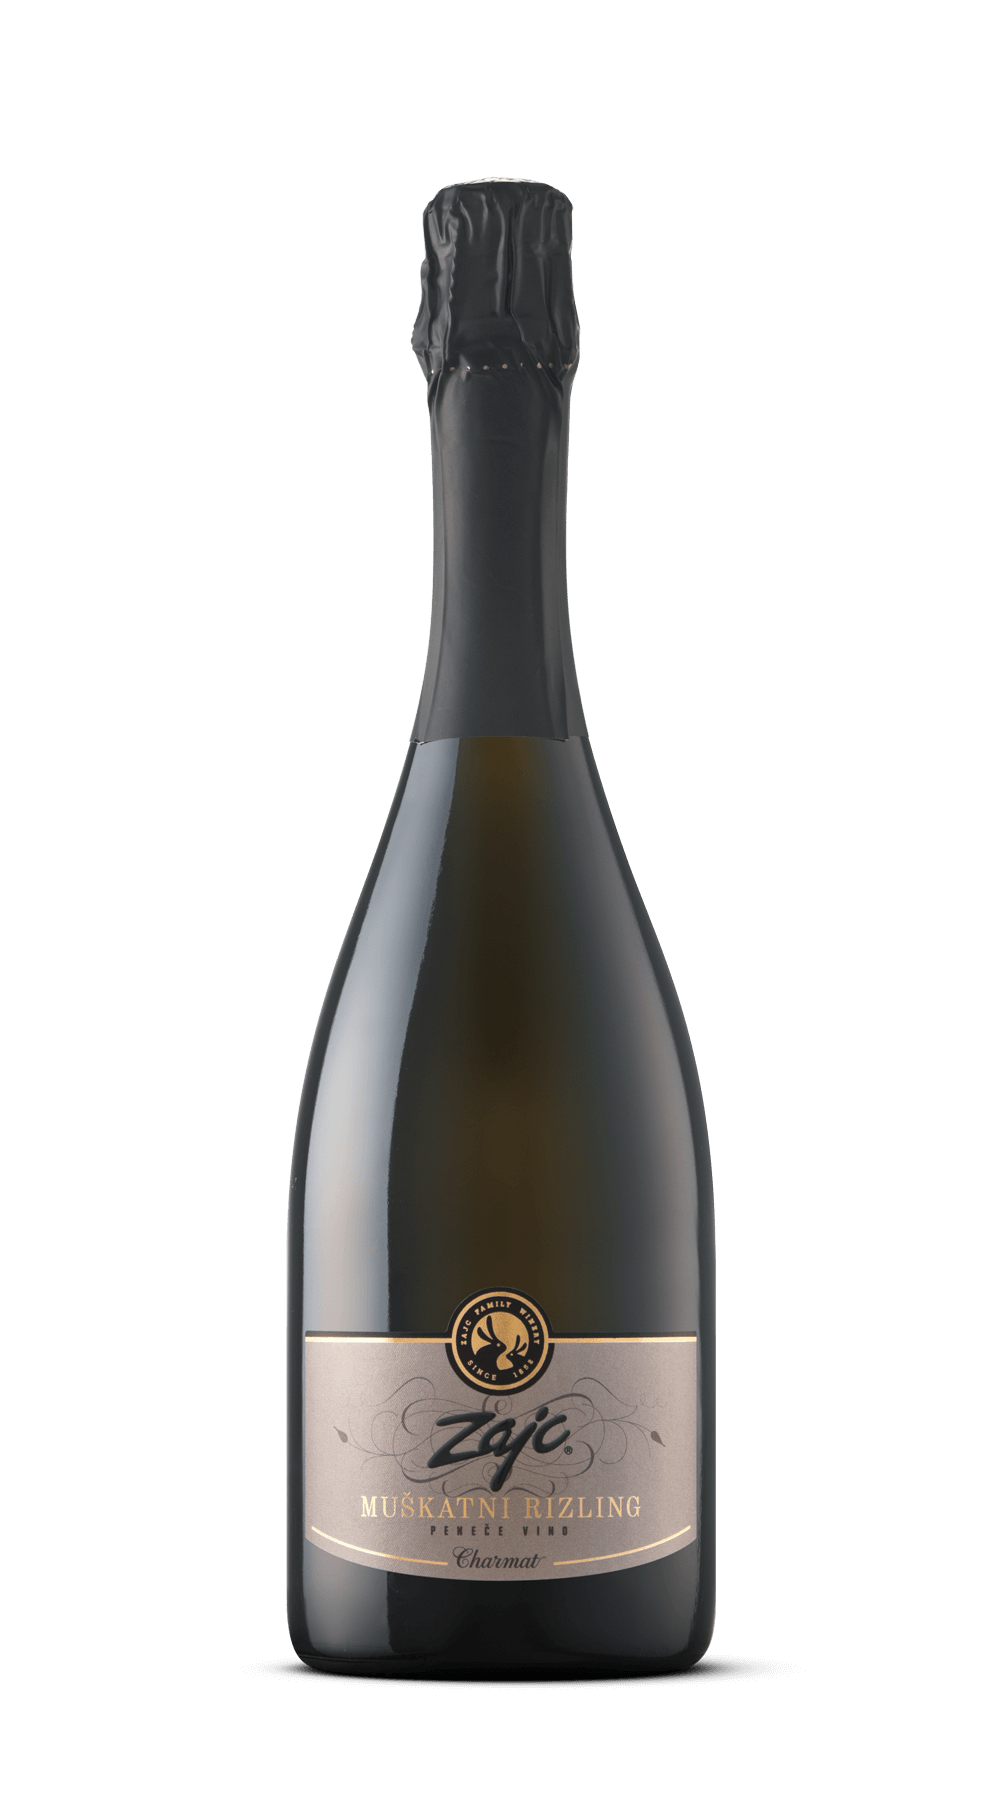 Muscat & riesling sparkling wine